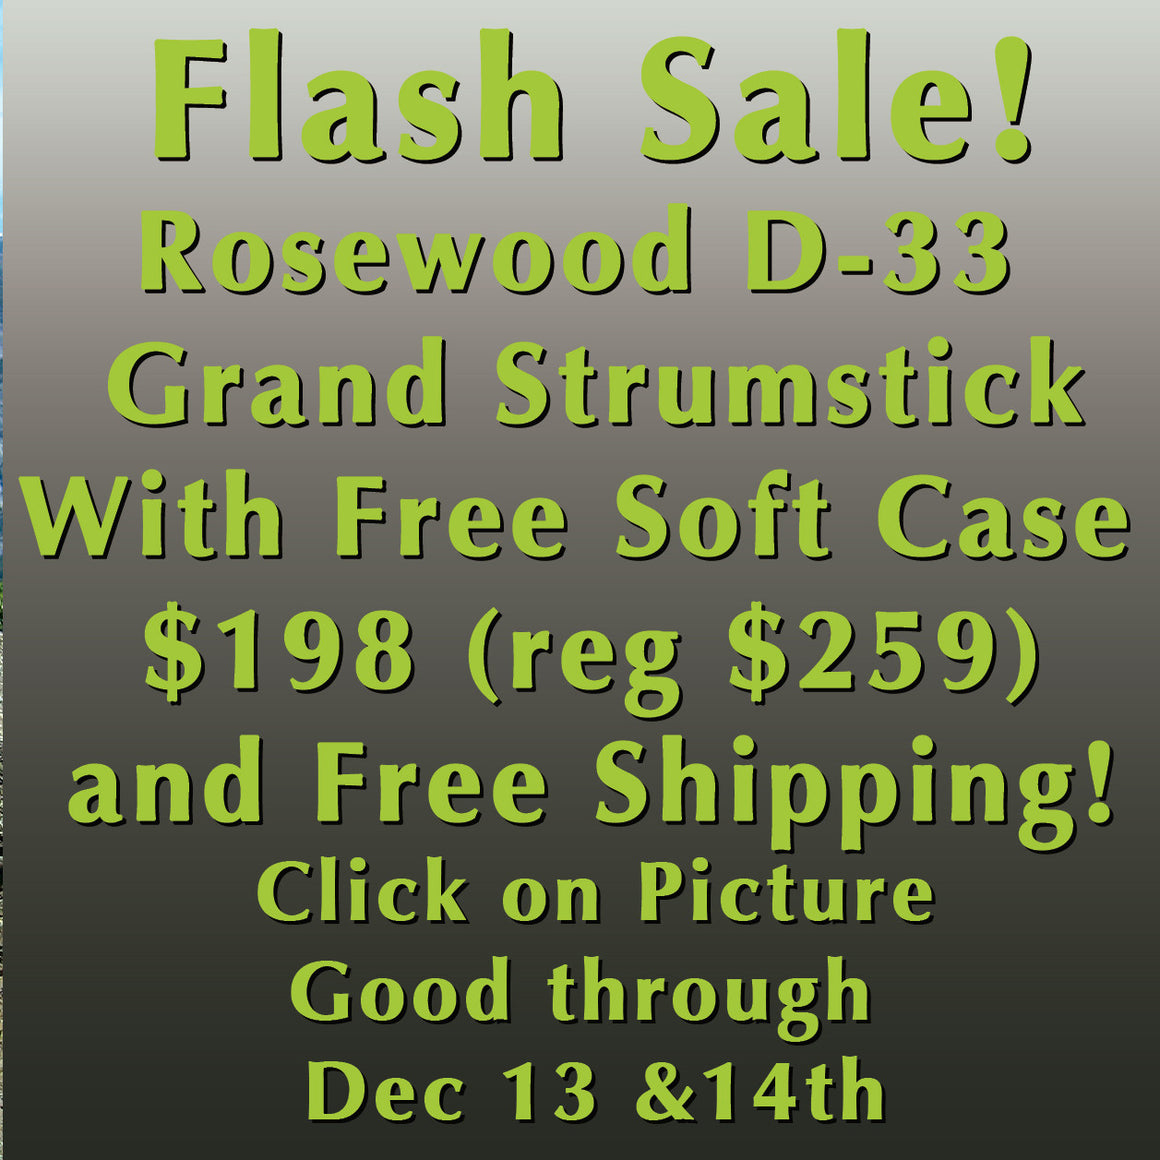 Copy of Rosewood D-33 Flash Sale